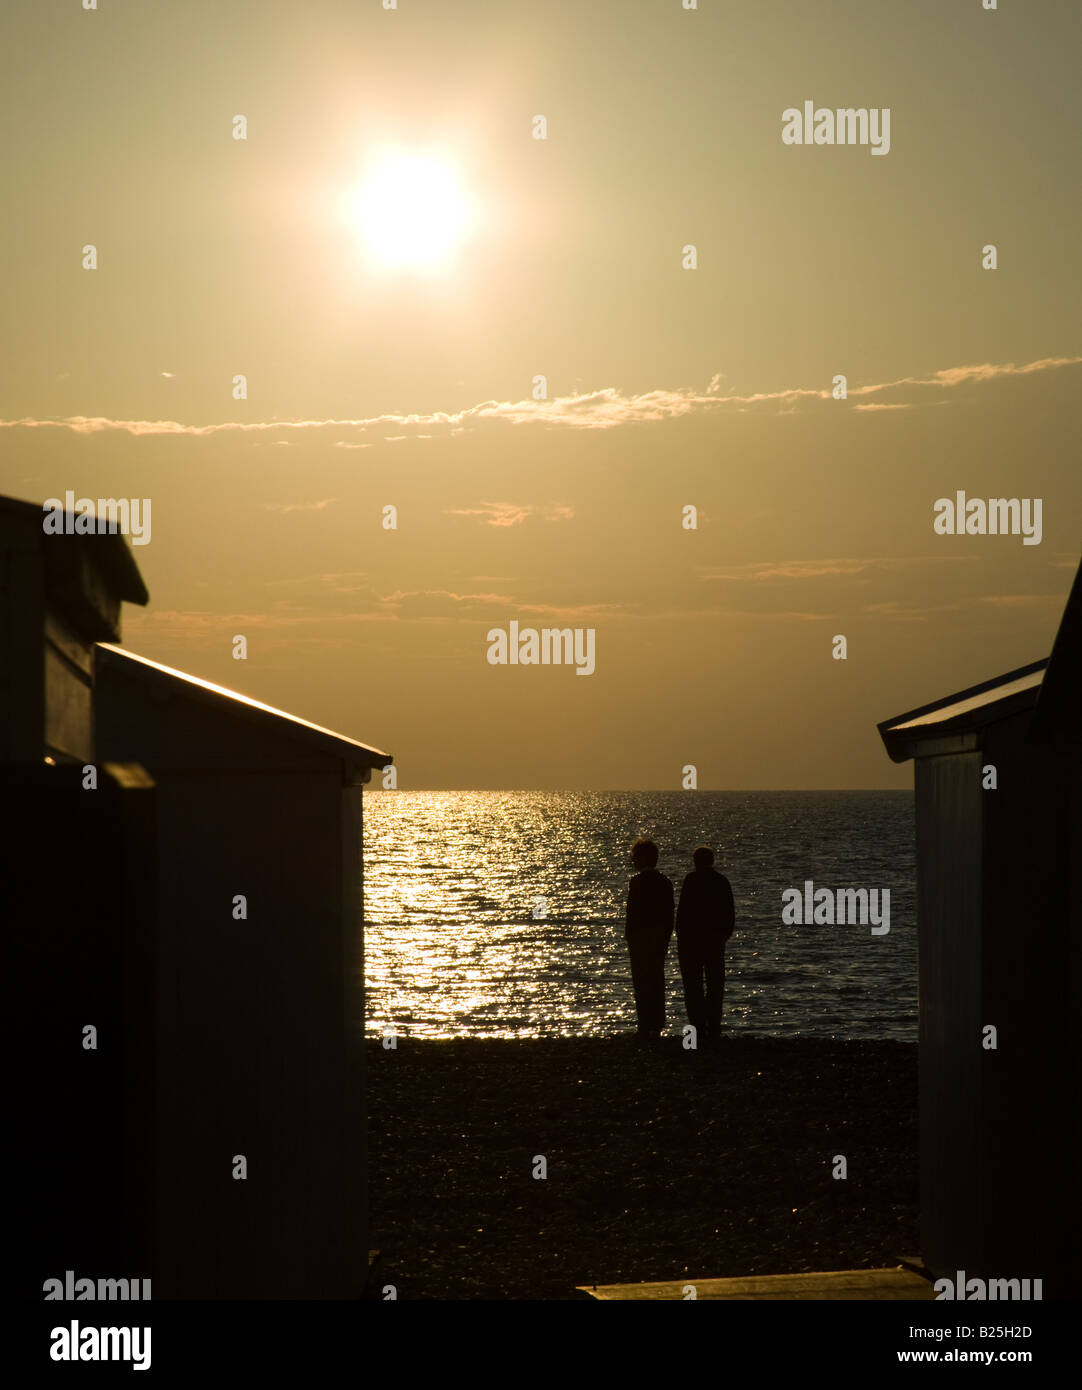 Beach Sillhouette at sunset, Le Treport, France, Normandy, Europe - Stock Image